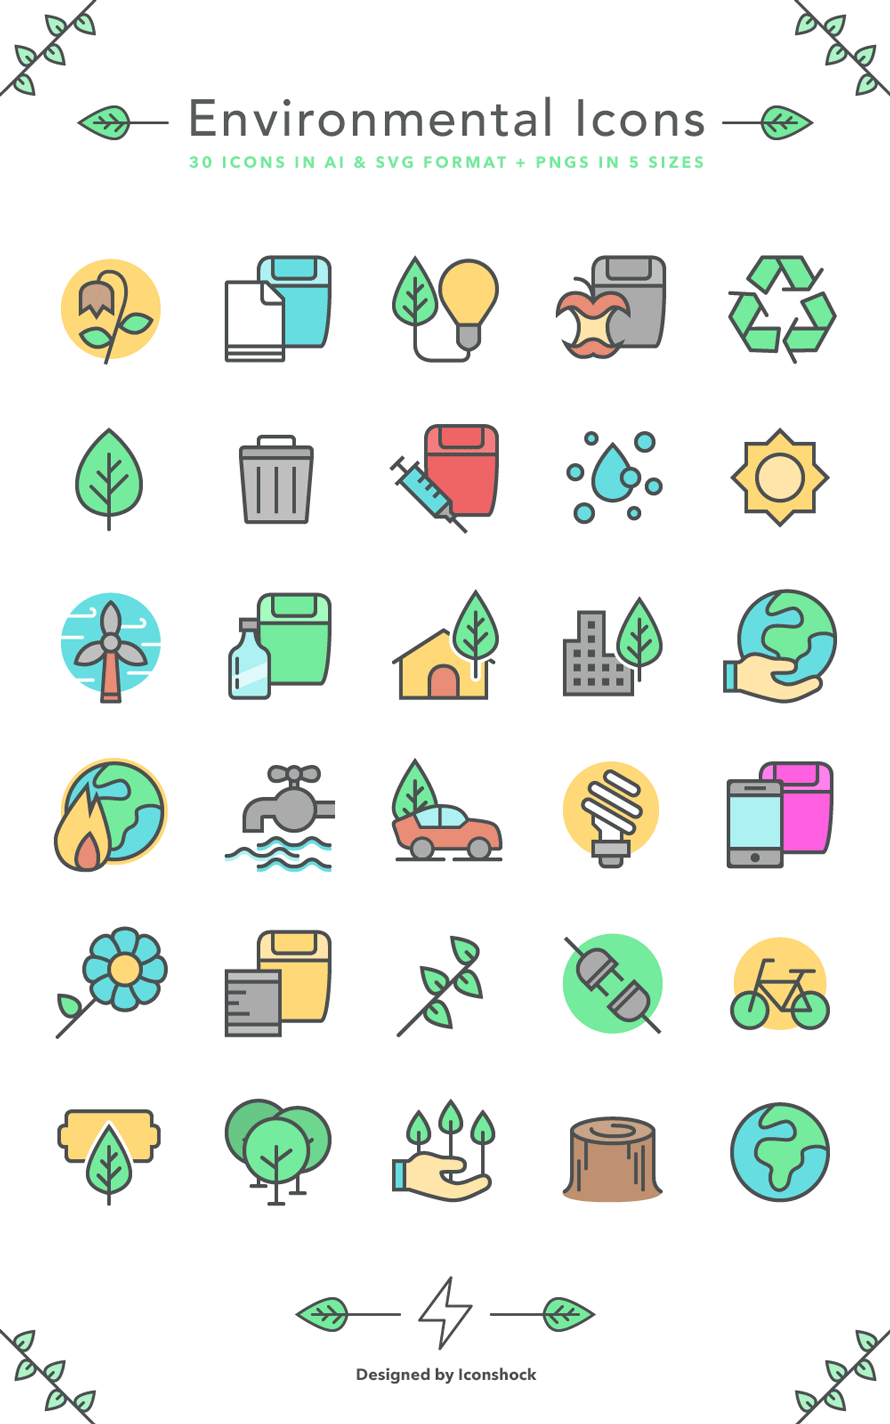 Environmental_icons_preview